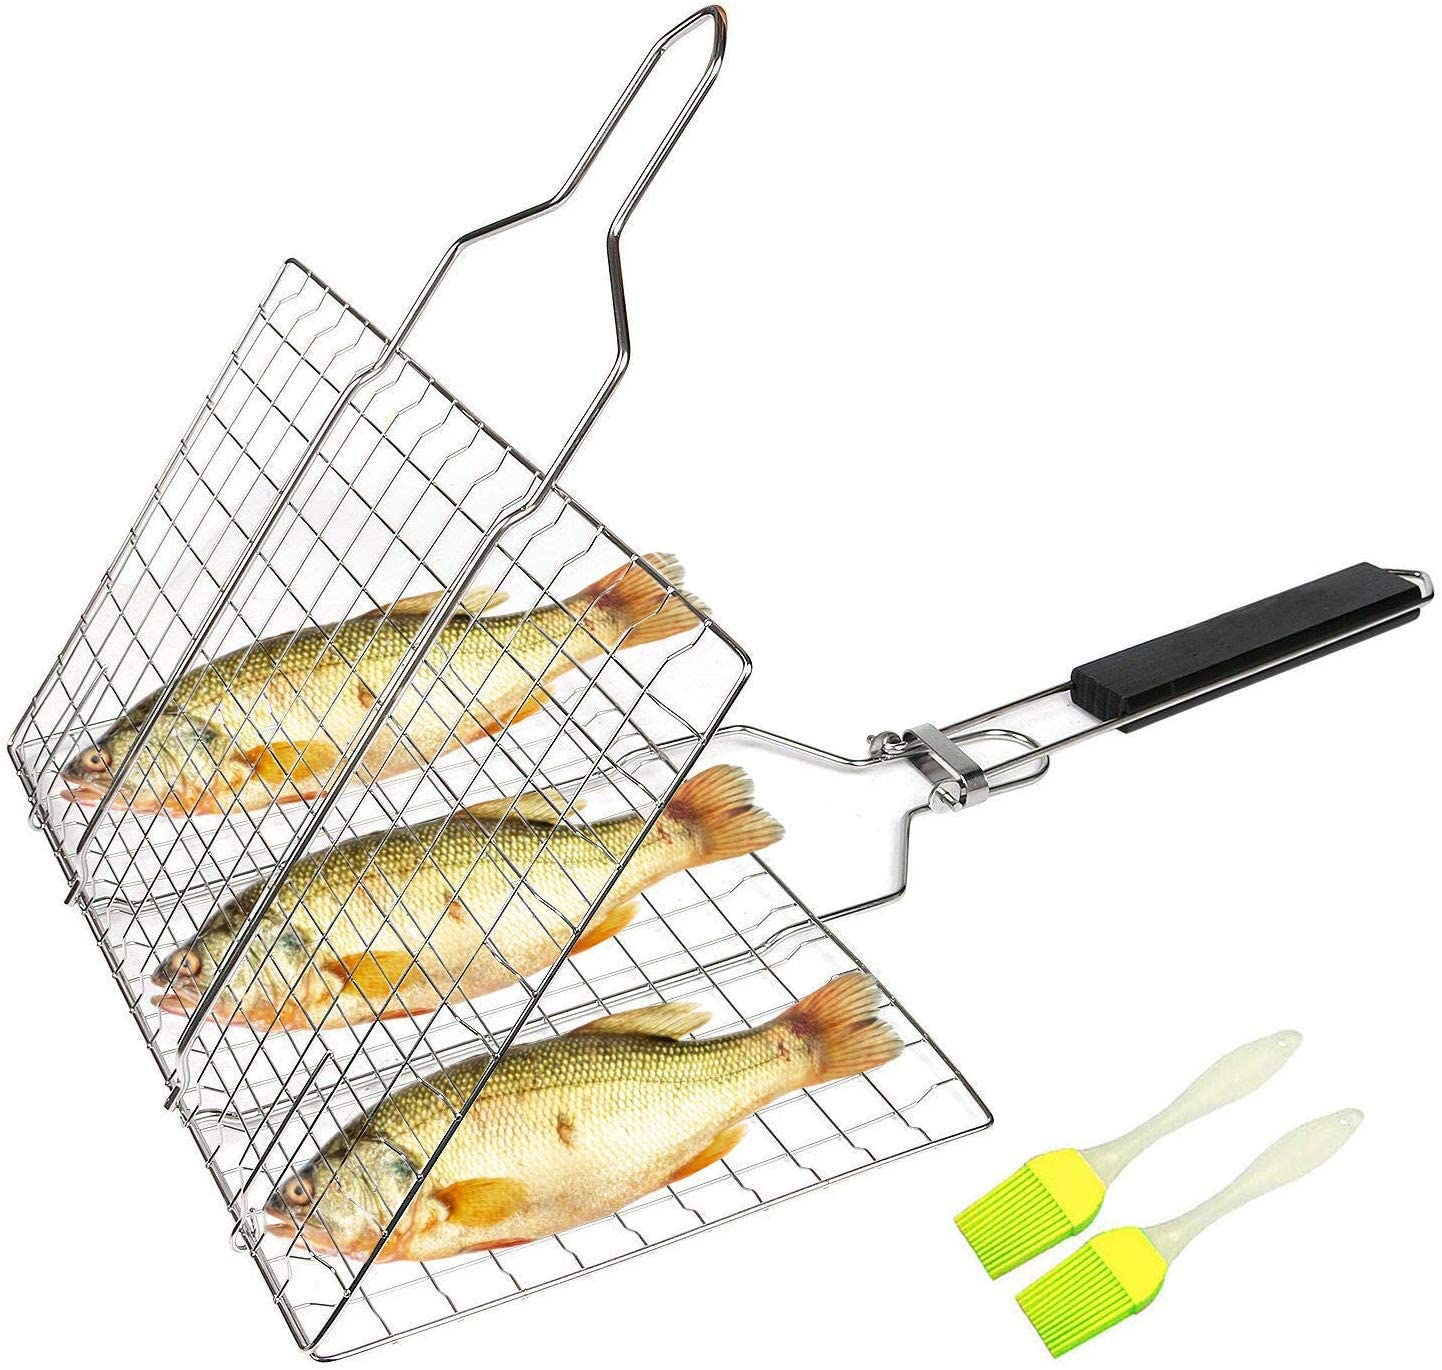 Ranking TOP18 Aleath Portable Grill Basket Stainless Gr BBQ Oakland Mall Accessories Steel